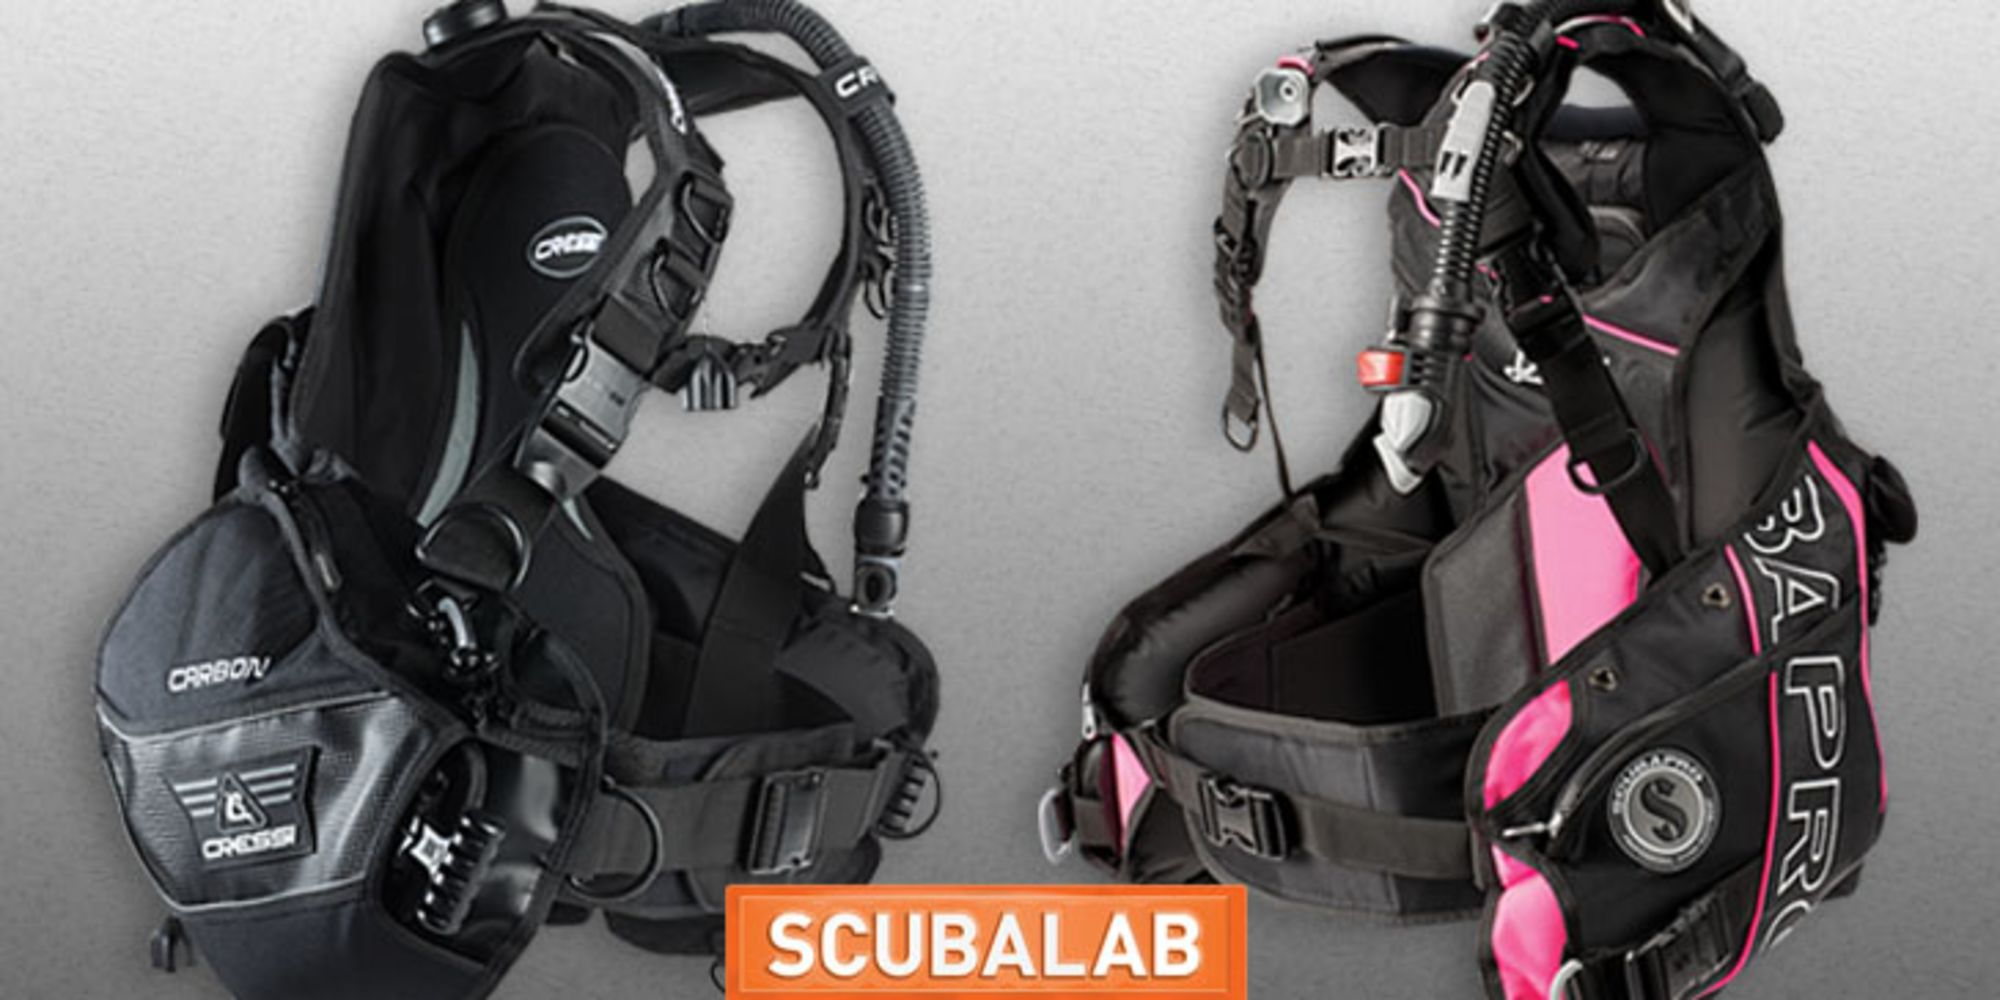 The Best Scuba BCDs of 2018